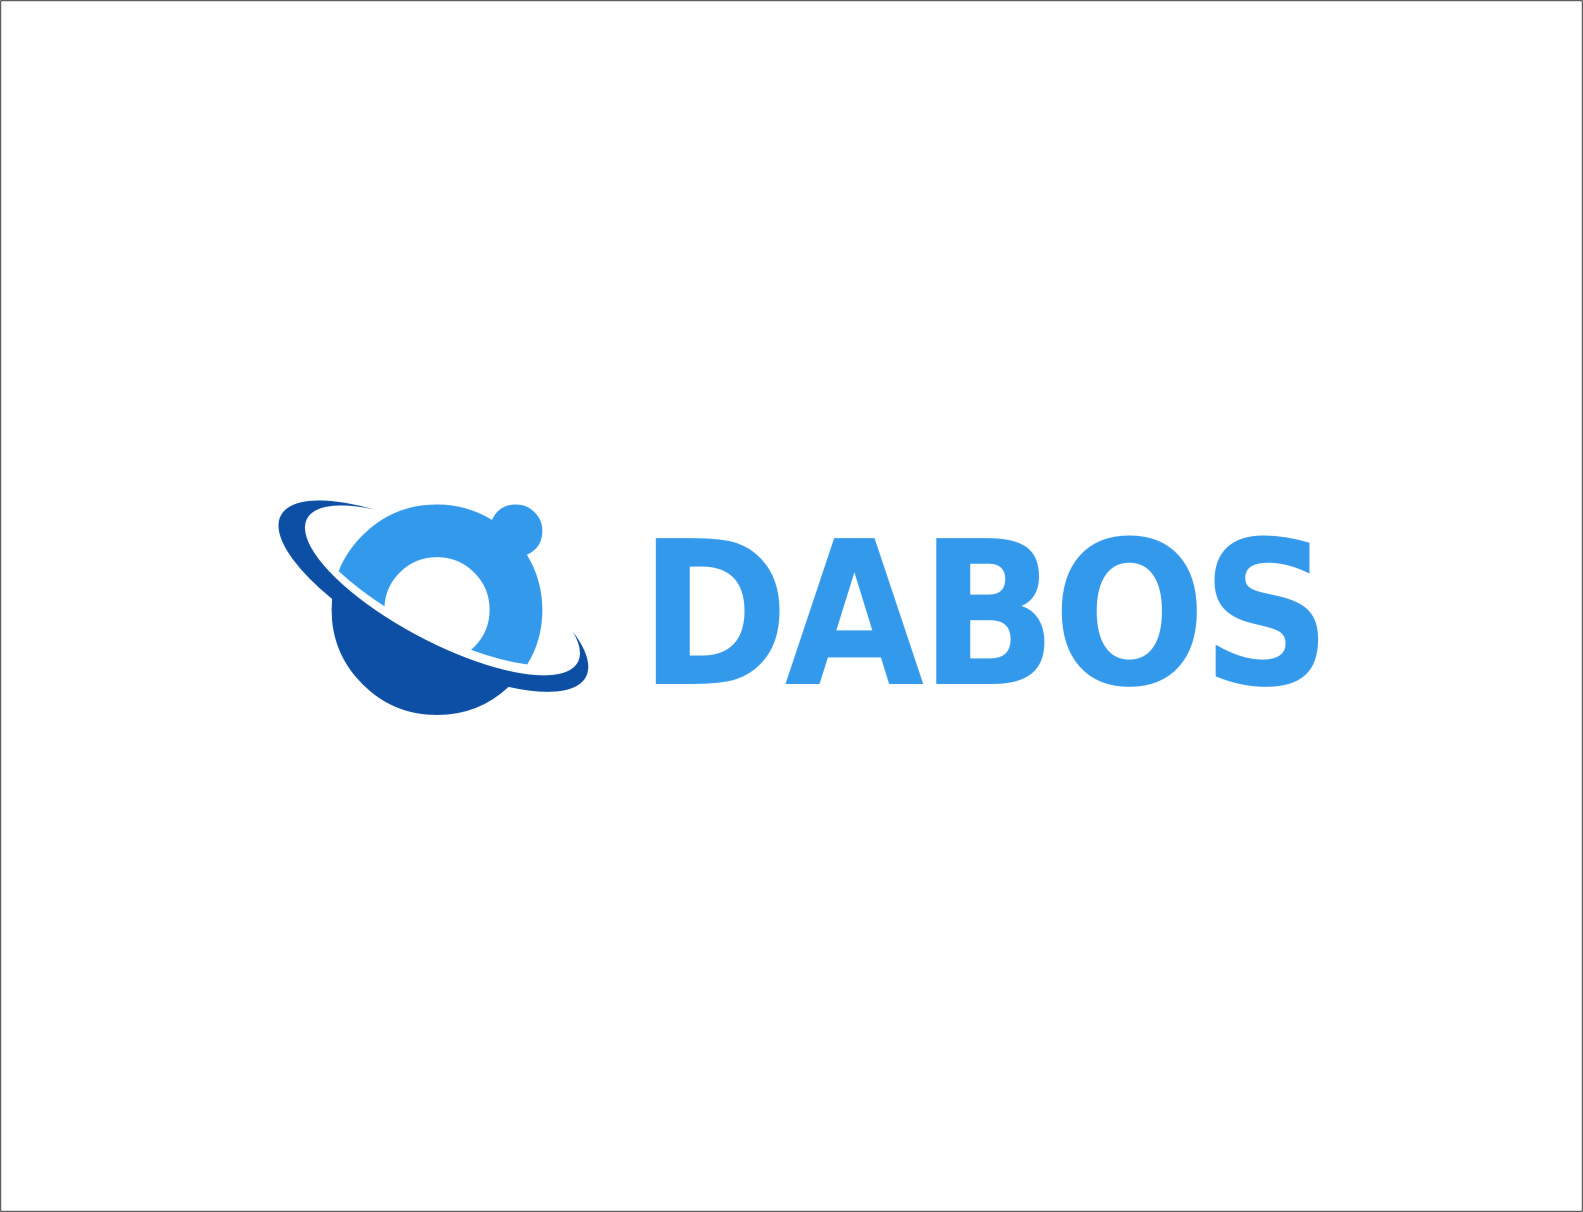 Logo Design by Ngepet_art - Entry No. 86 in the Logo Design Contest Imaginative Logo Design for DABOS, Limited Liability Company.